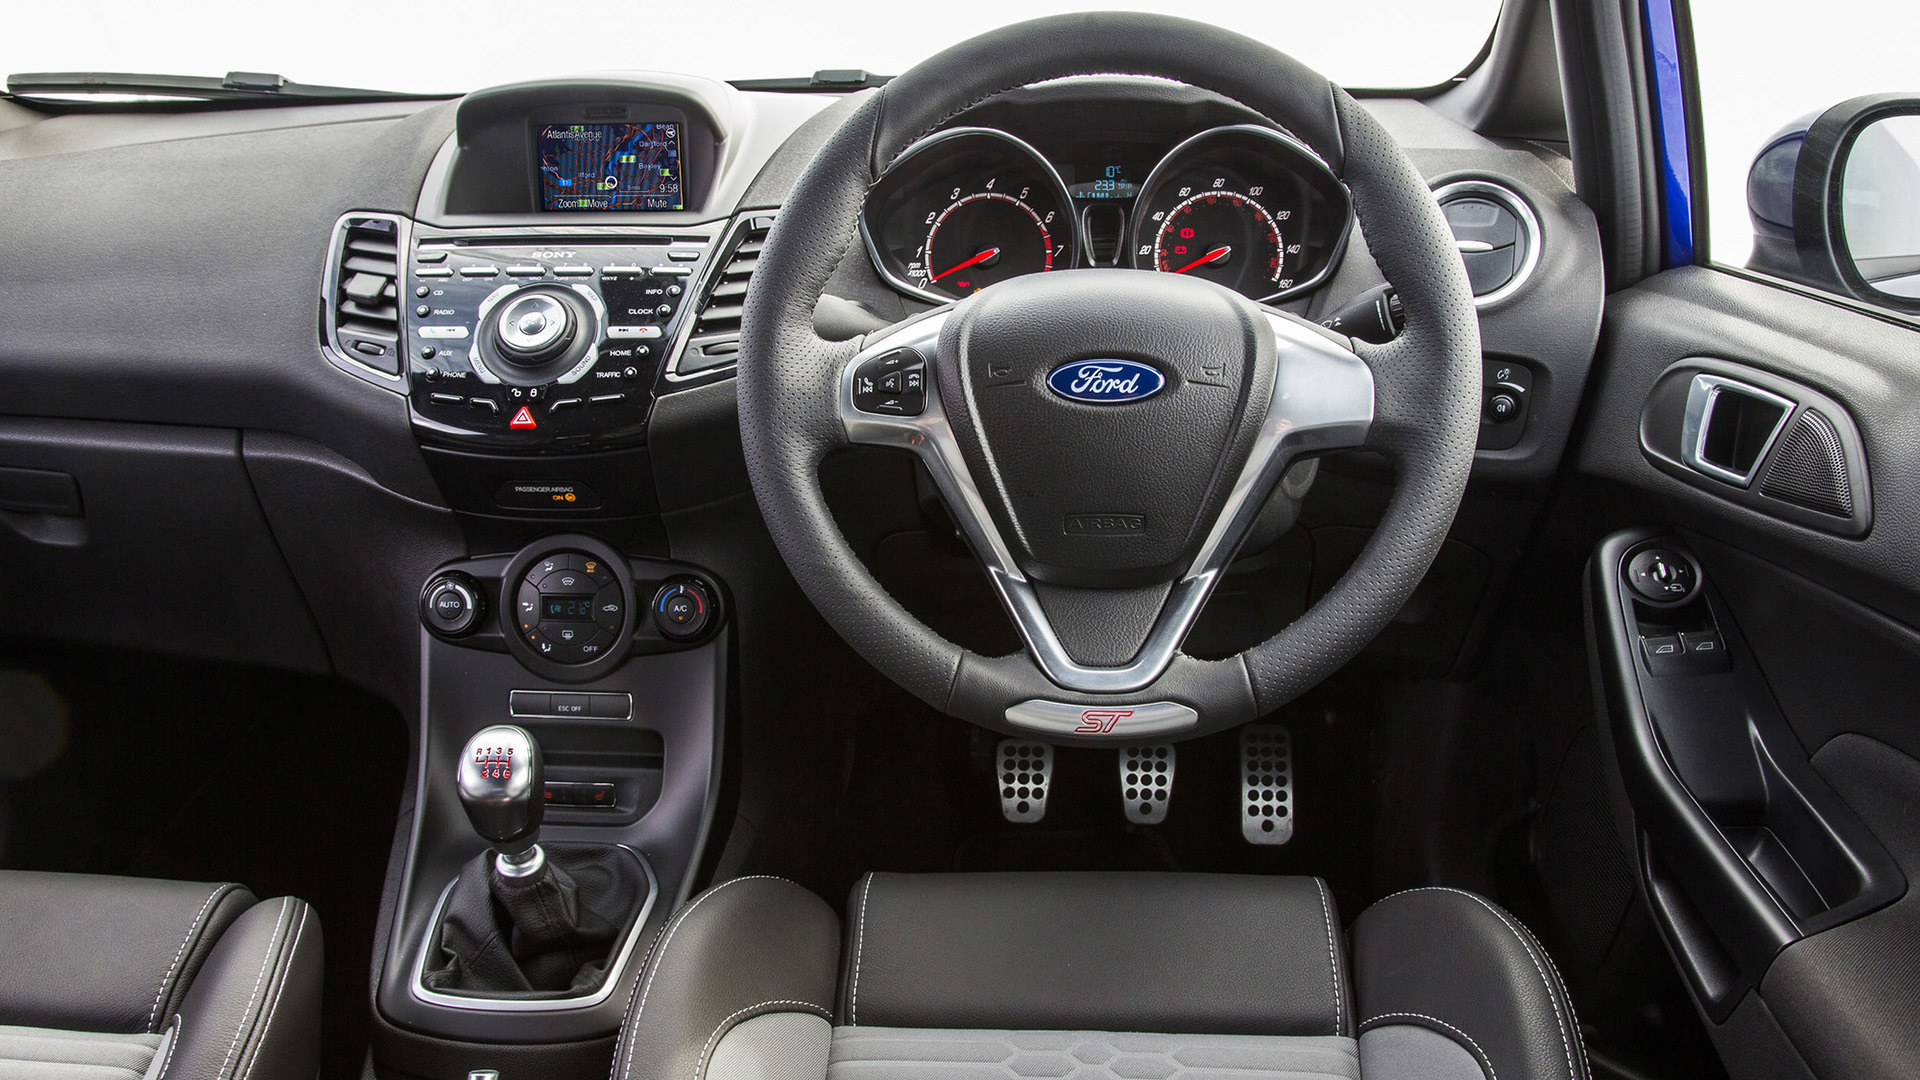 & 2018 Ford Fiesta For U.S. Loses Three-Cylinder EcoBoost Engine